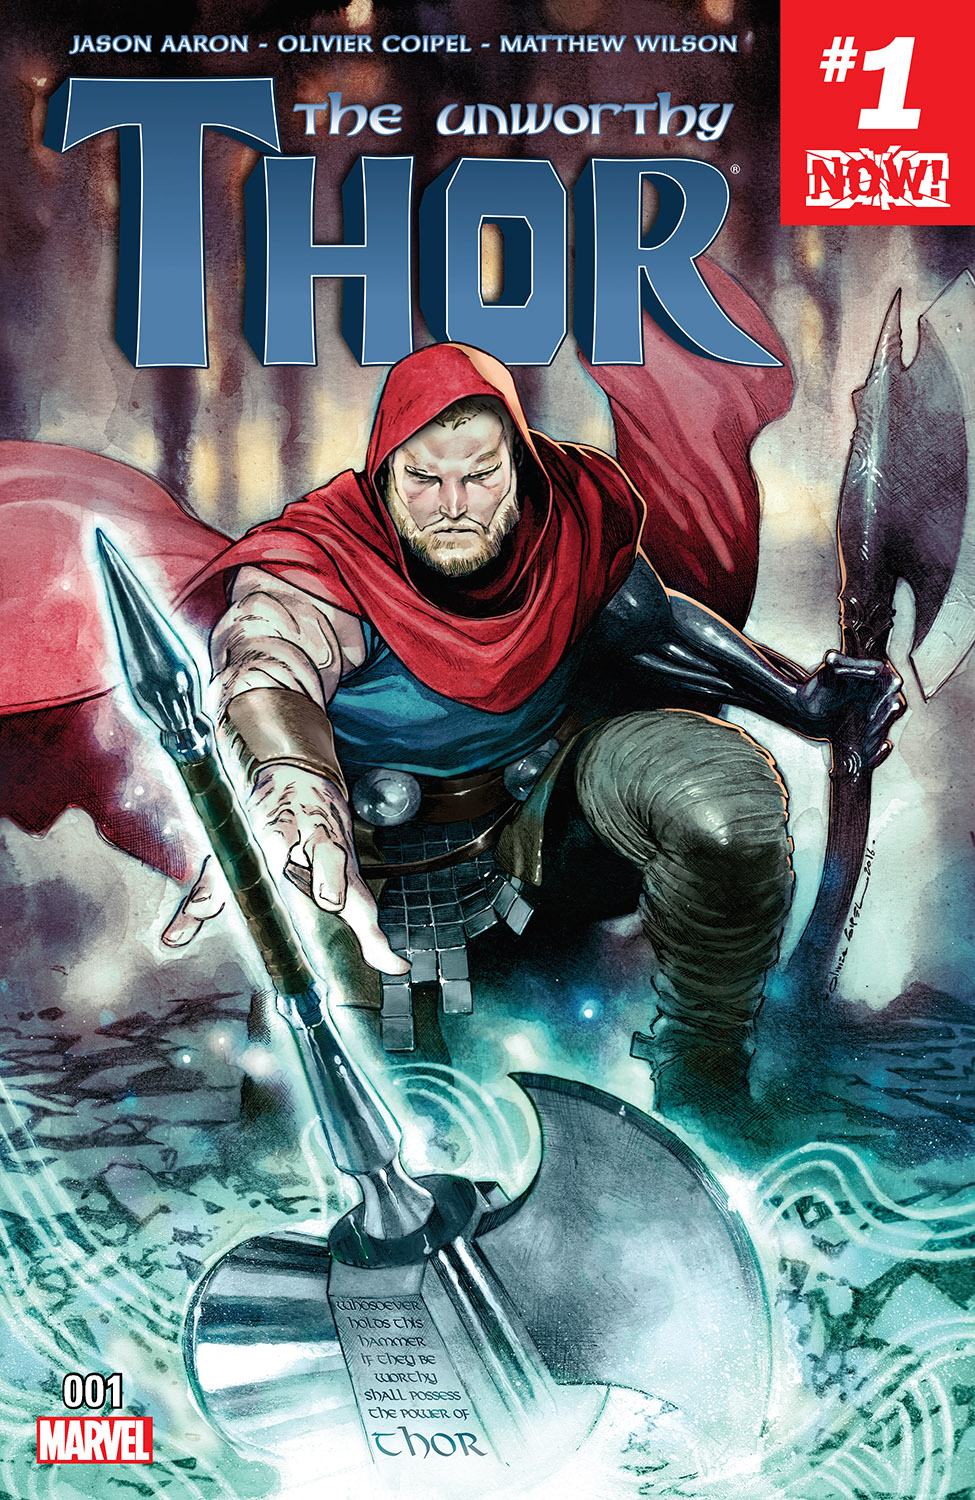 The Unworthy Thor (2016) #1